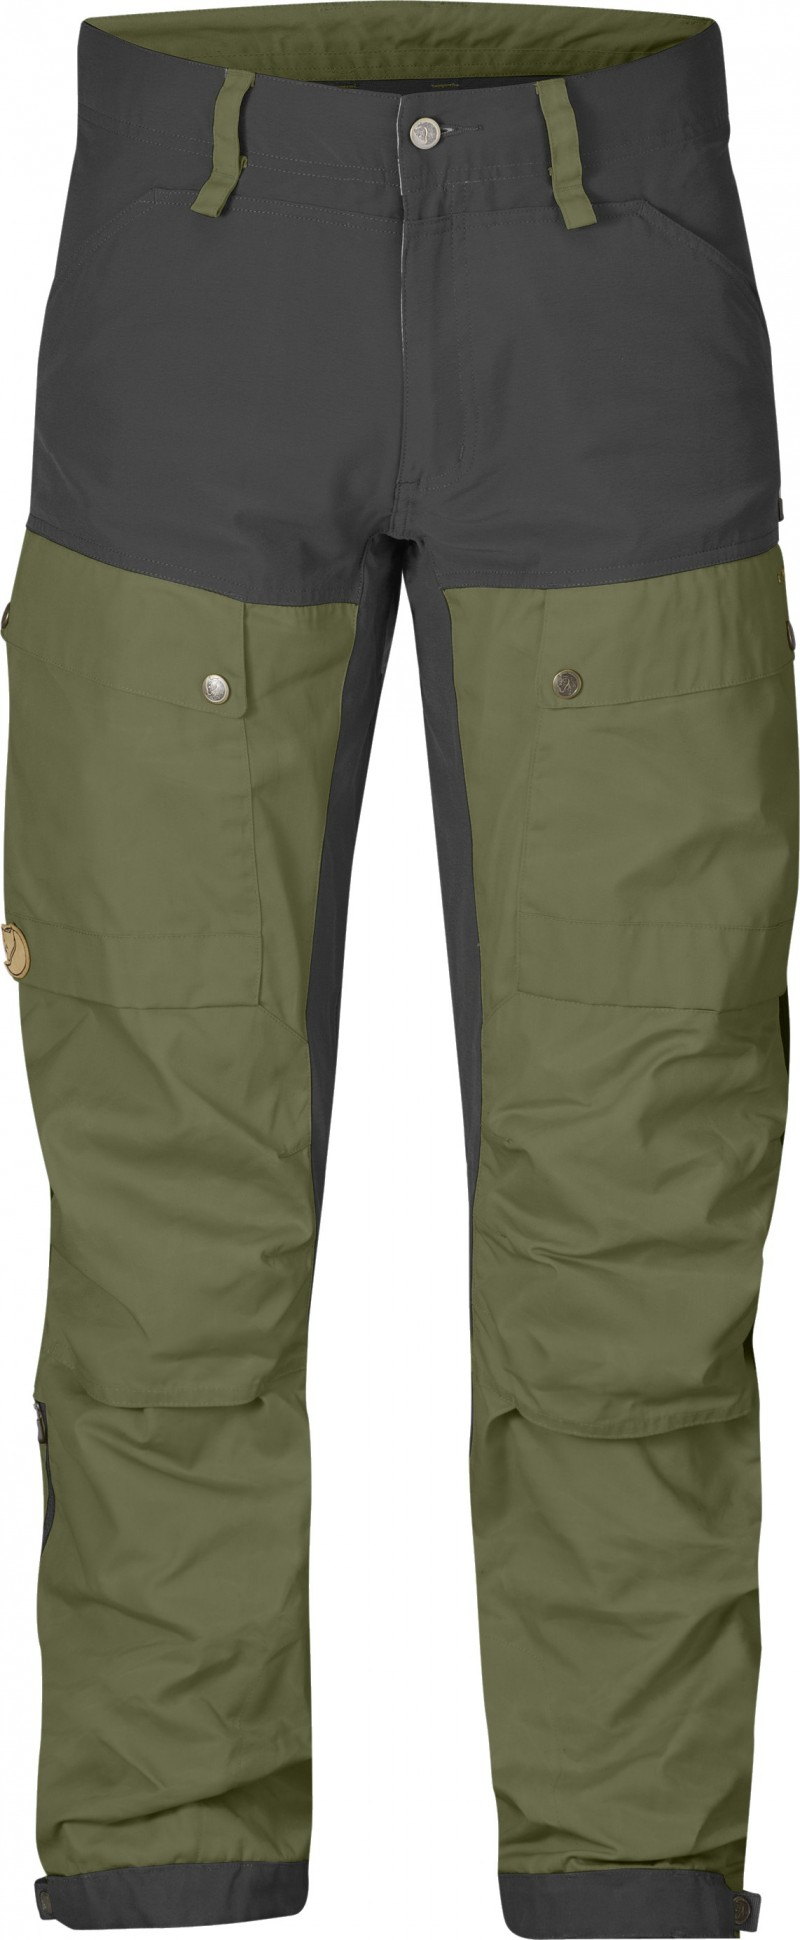 FjallRaven Keb Trousers Green-30